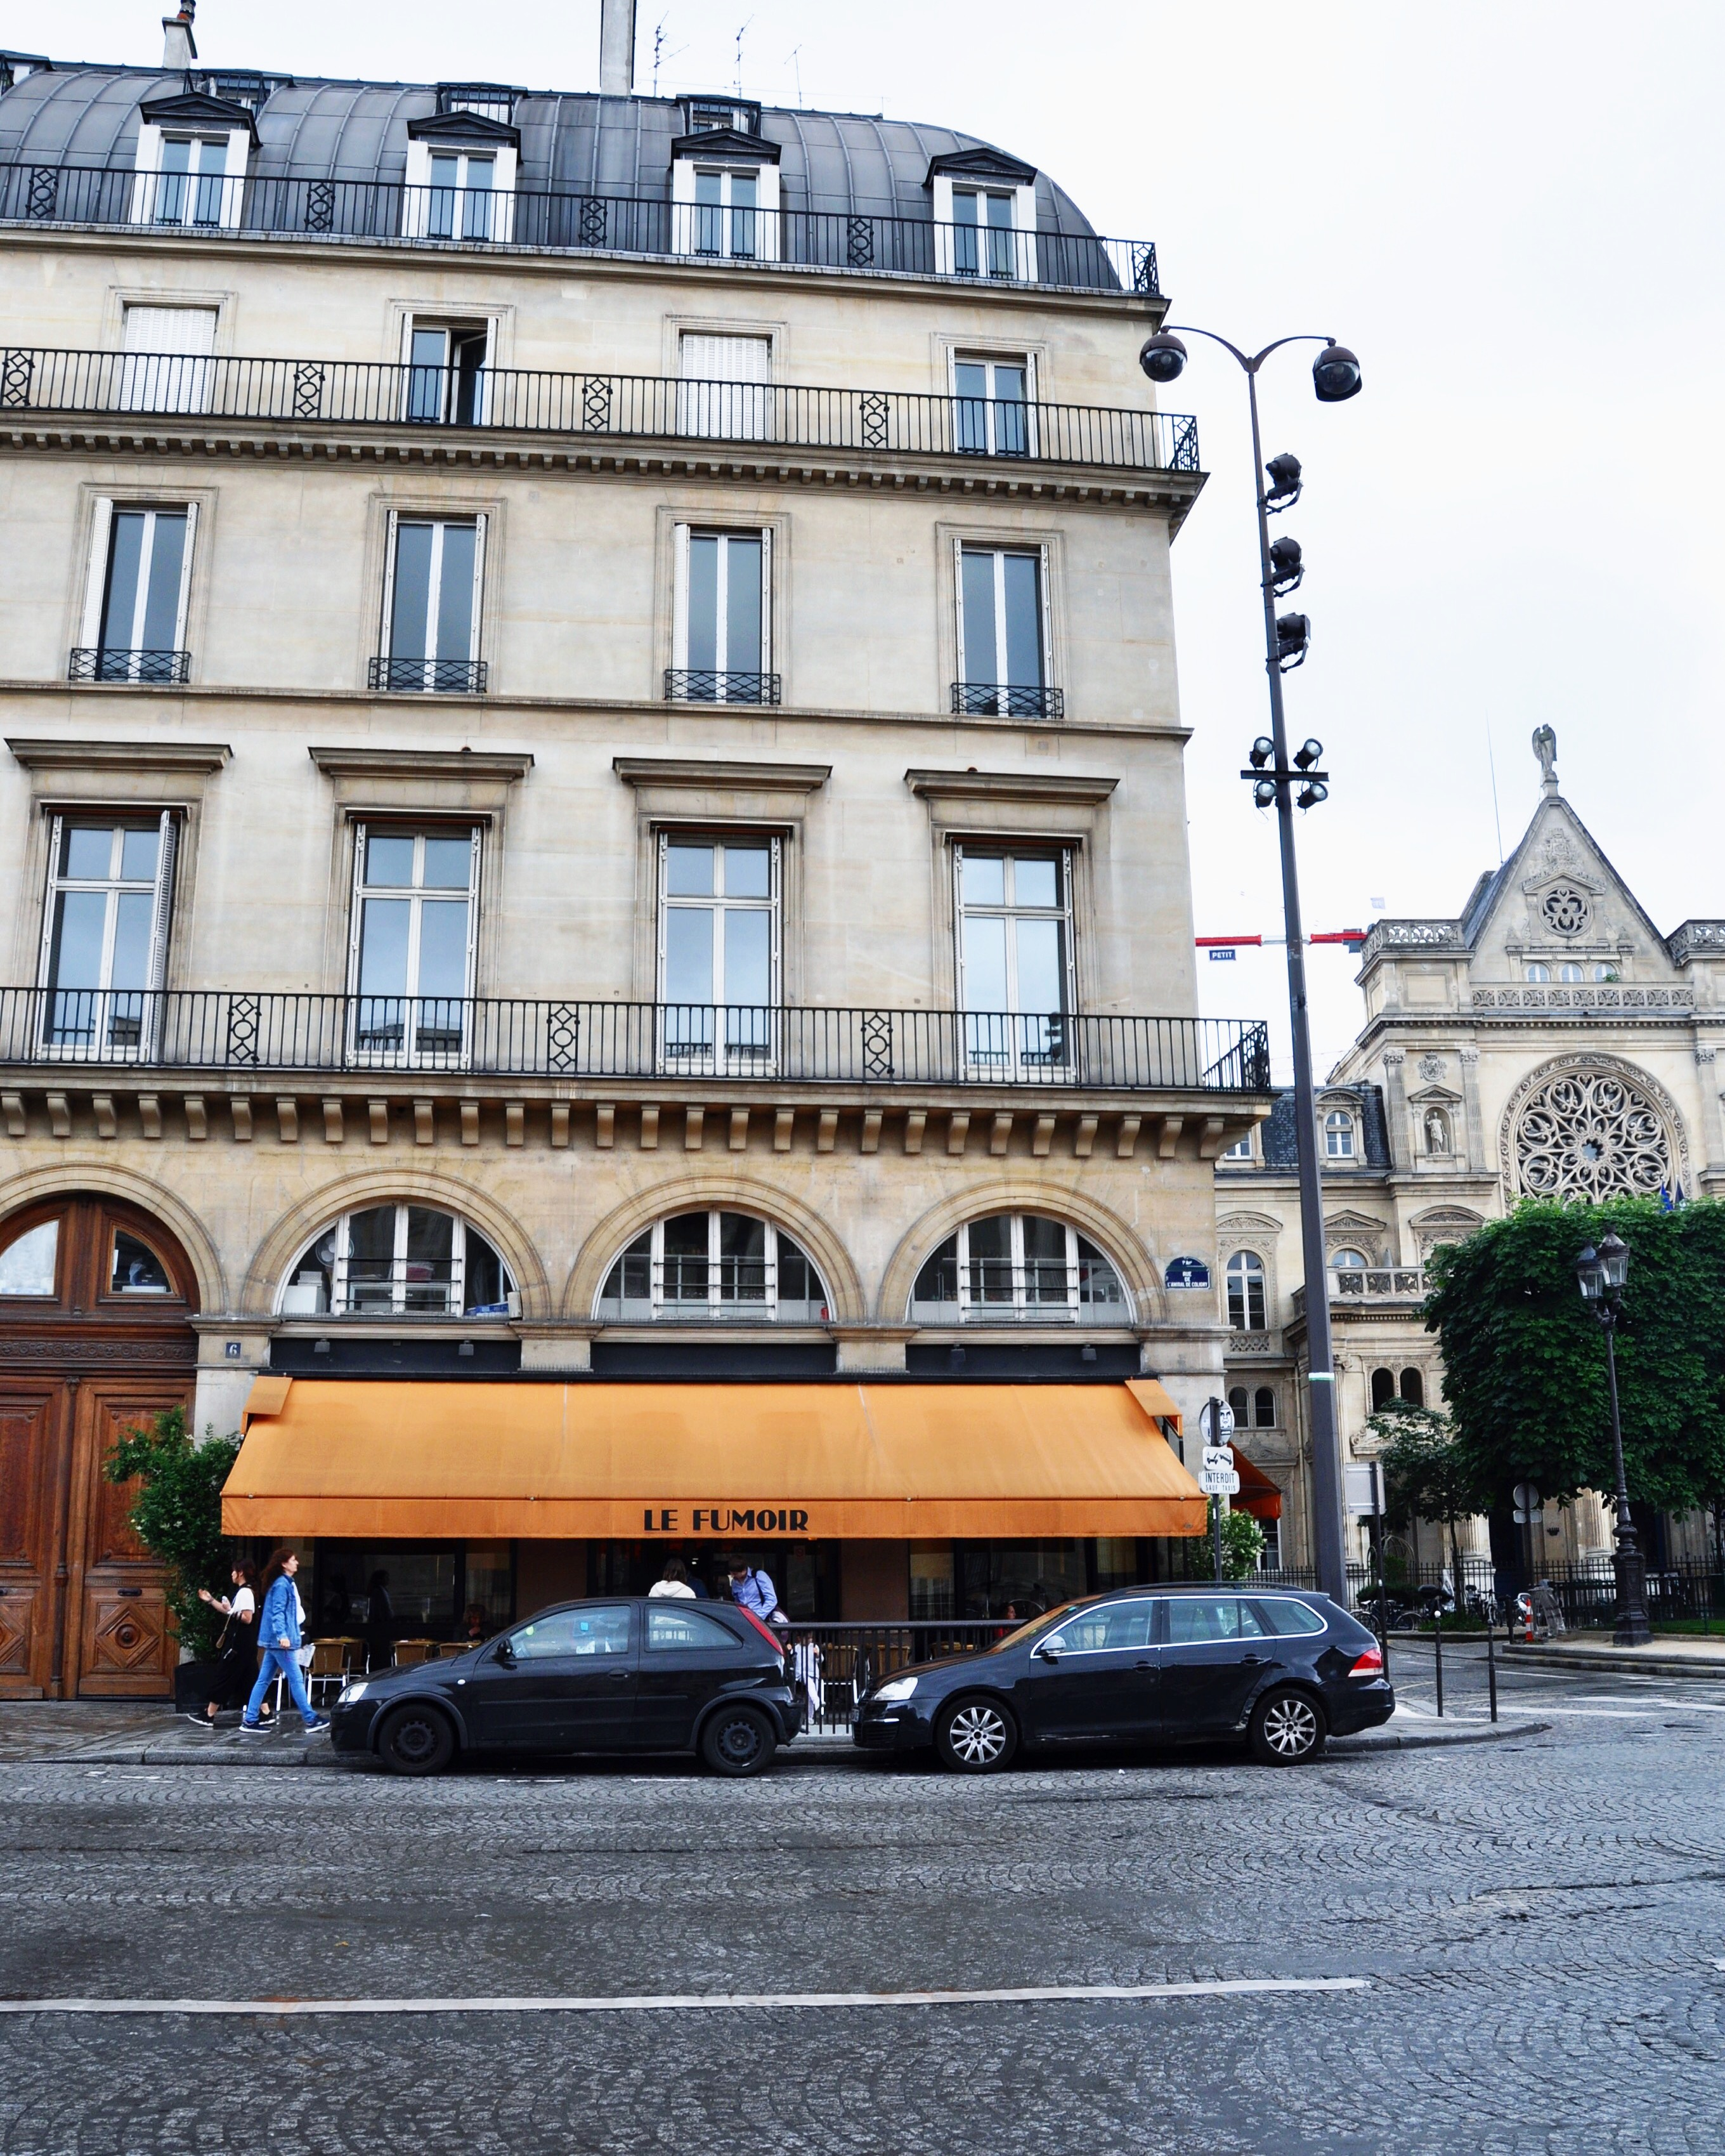 Le Fumoir - perfect Sunday brunch spot near the Louvre in Paris